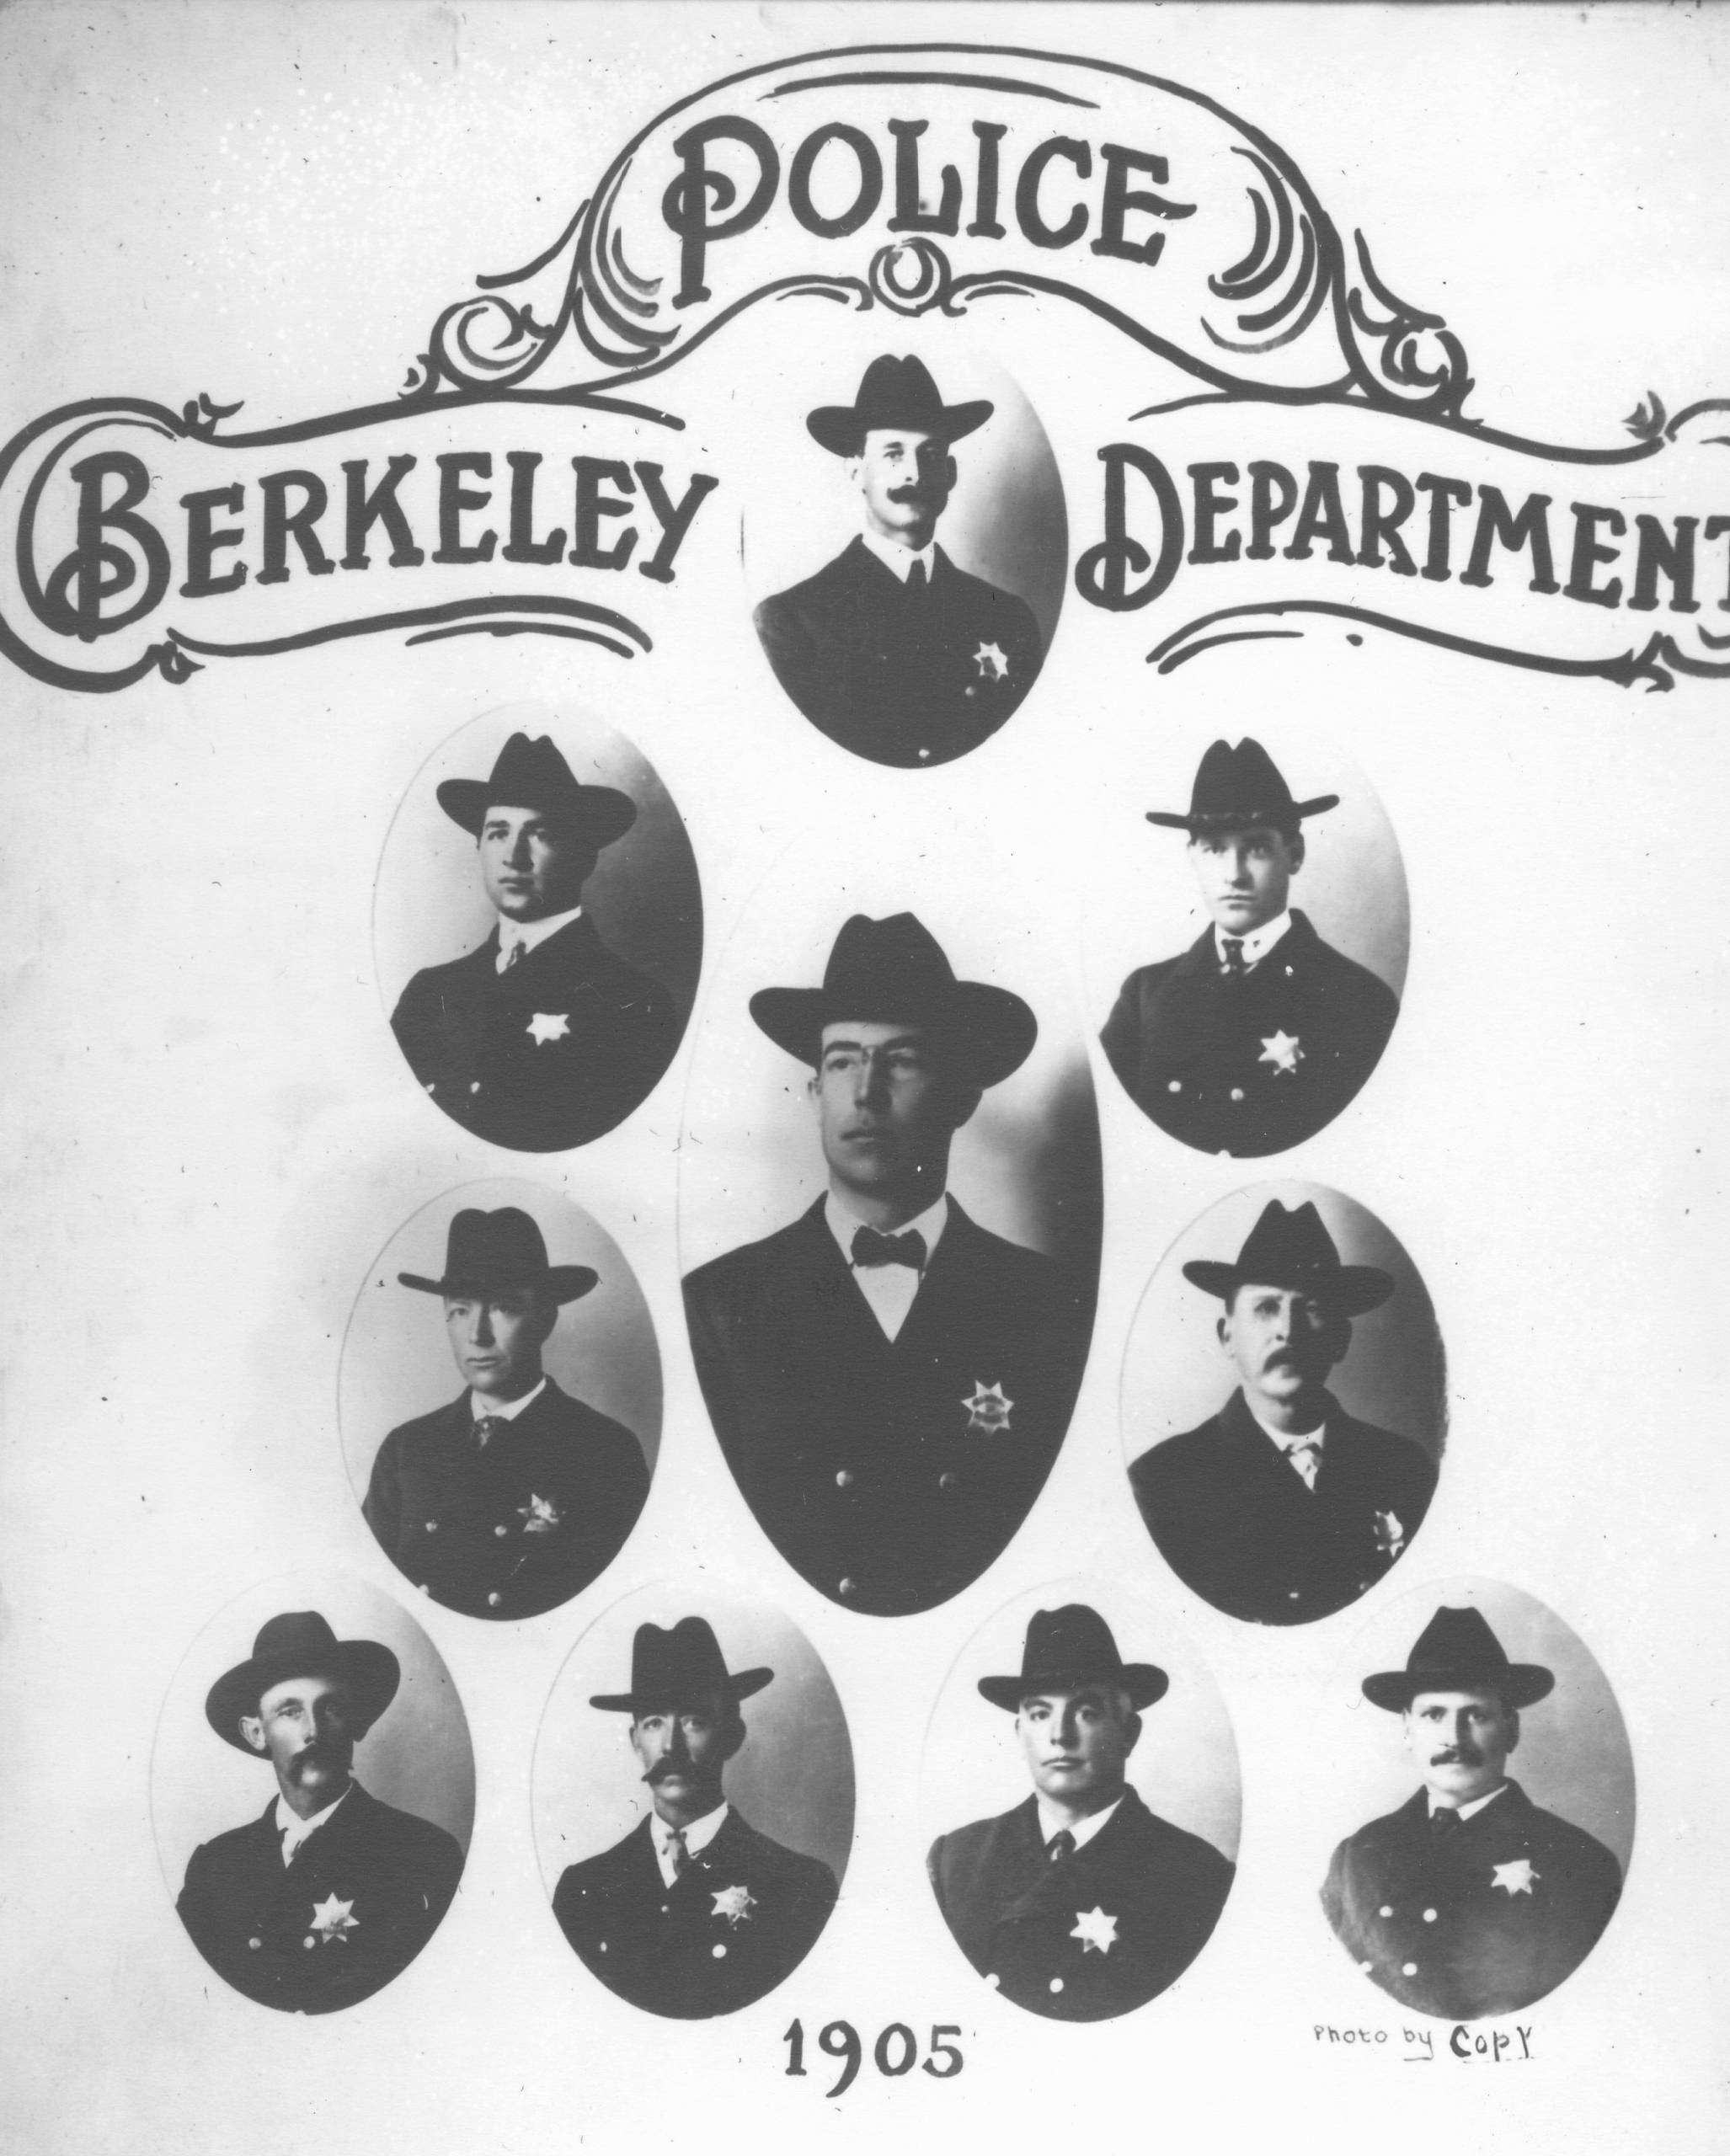 Photos of the 10 men who made up the Berkeley Police Department in 1905 when August Vollmer was elected town marshal.